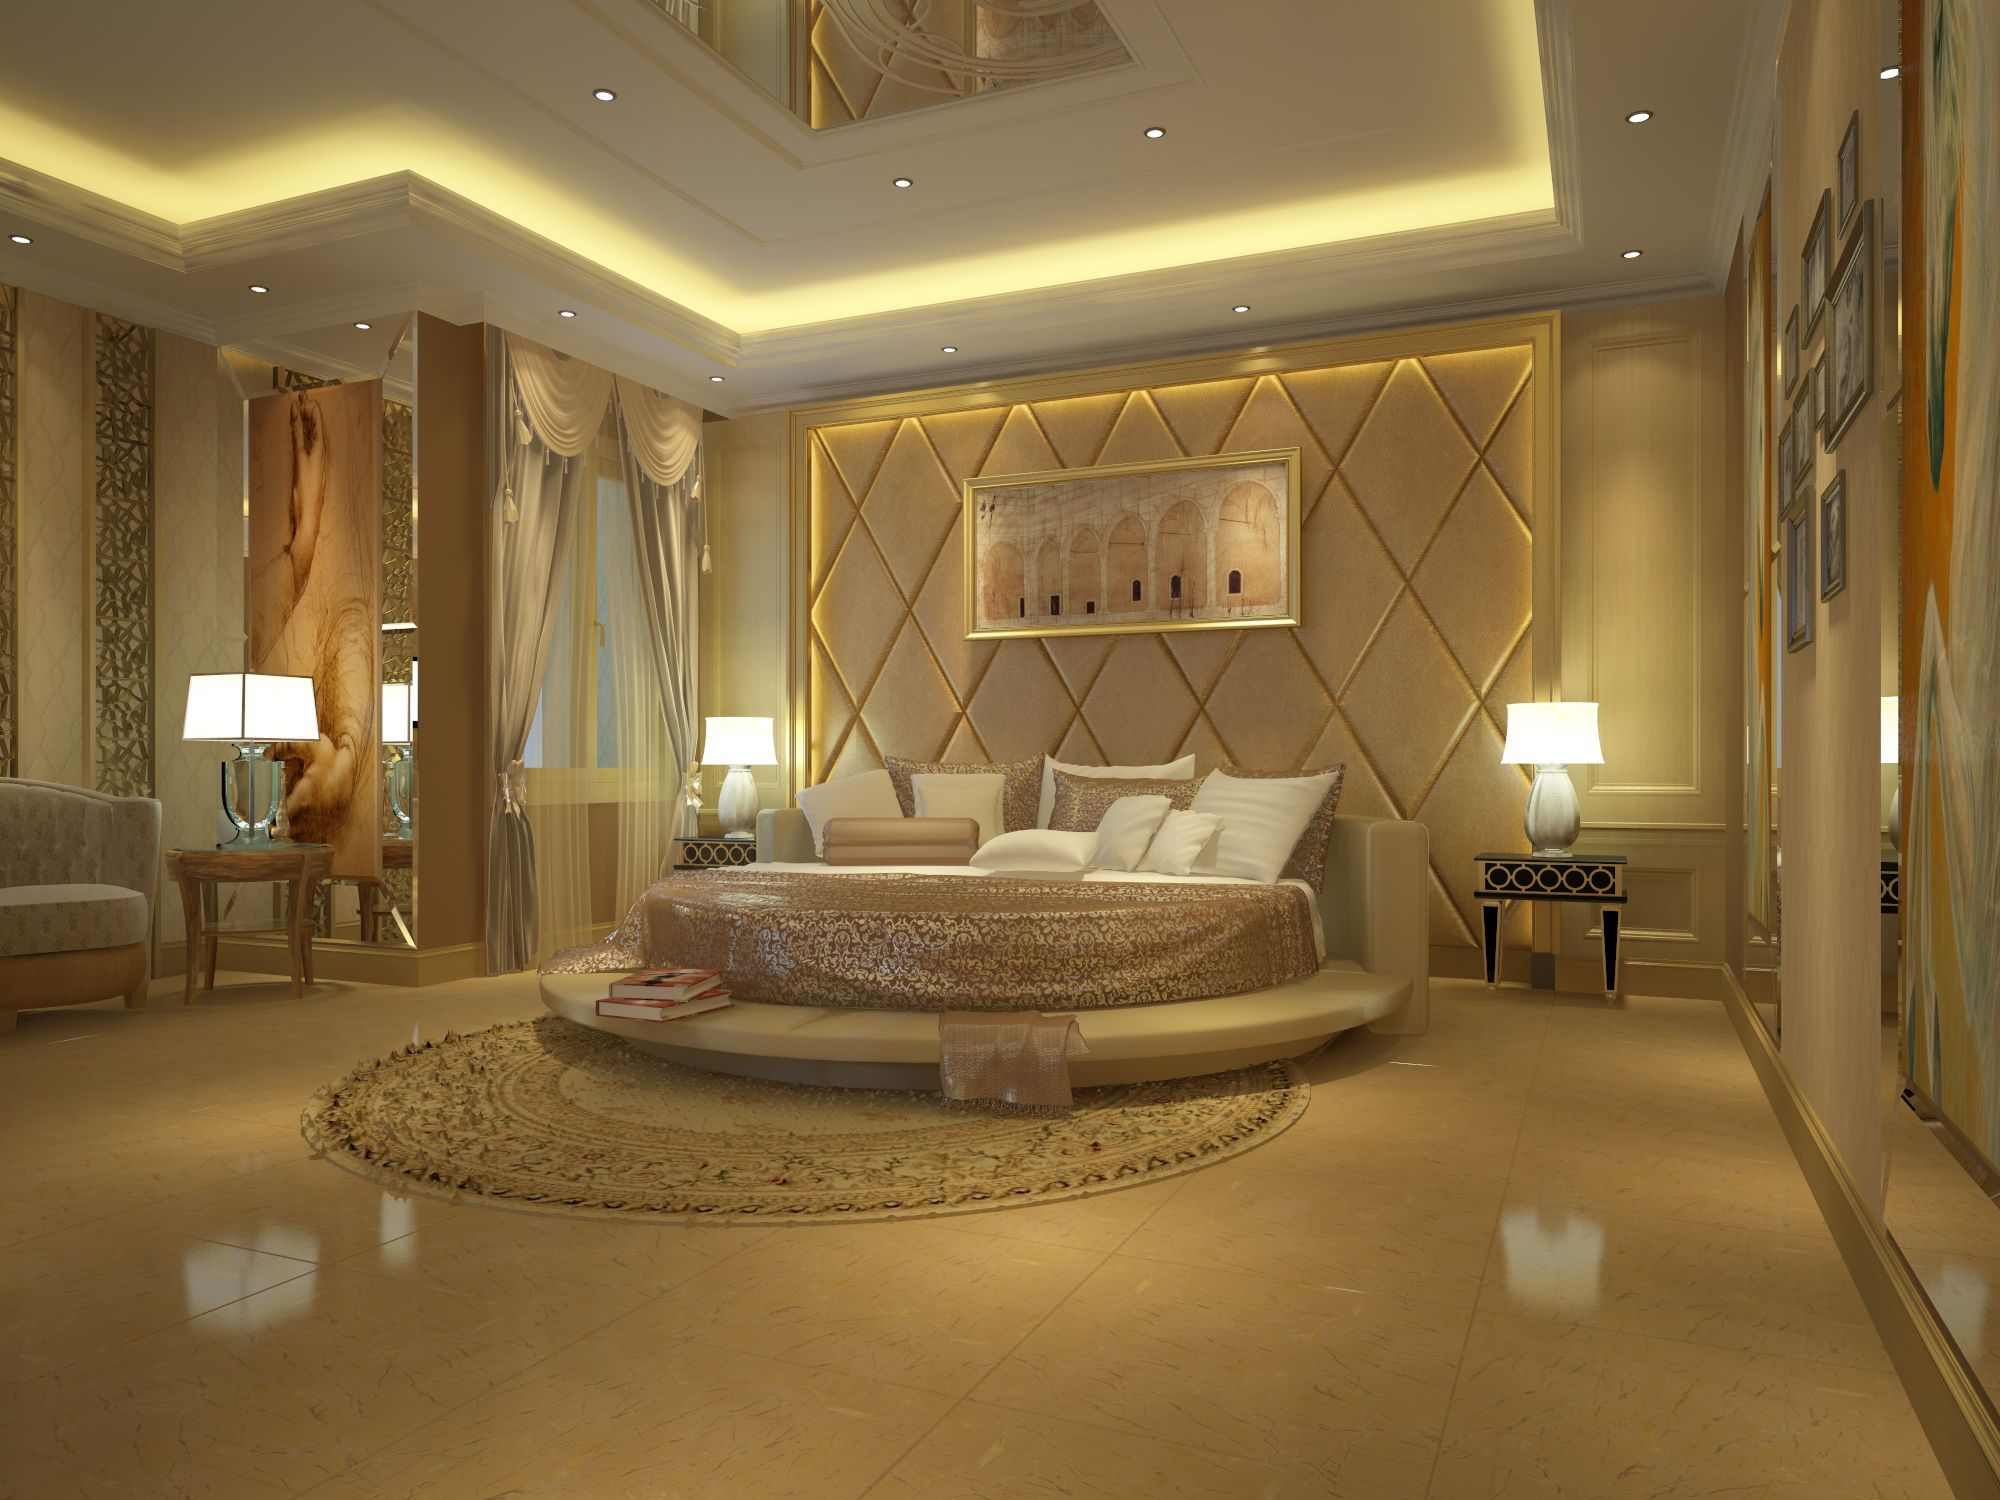 Luxurious Bedroom Design Beauteous 30 Romantic Master Bedroom Designs  Luxury Master Bedroom Master Decorating Design